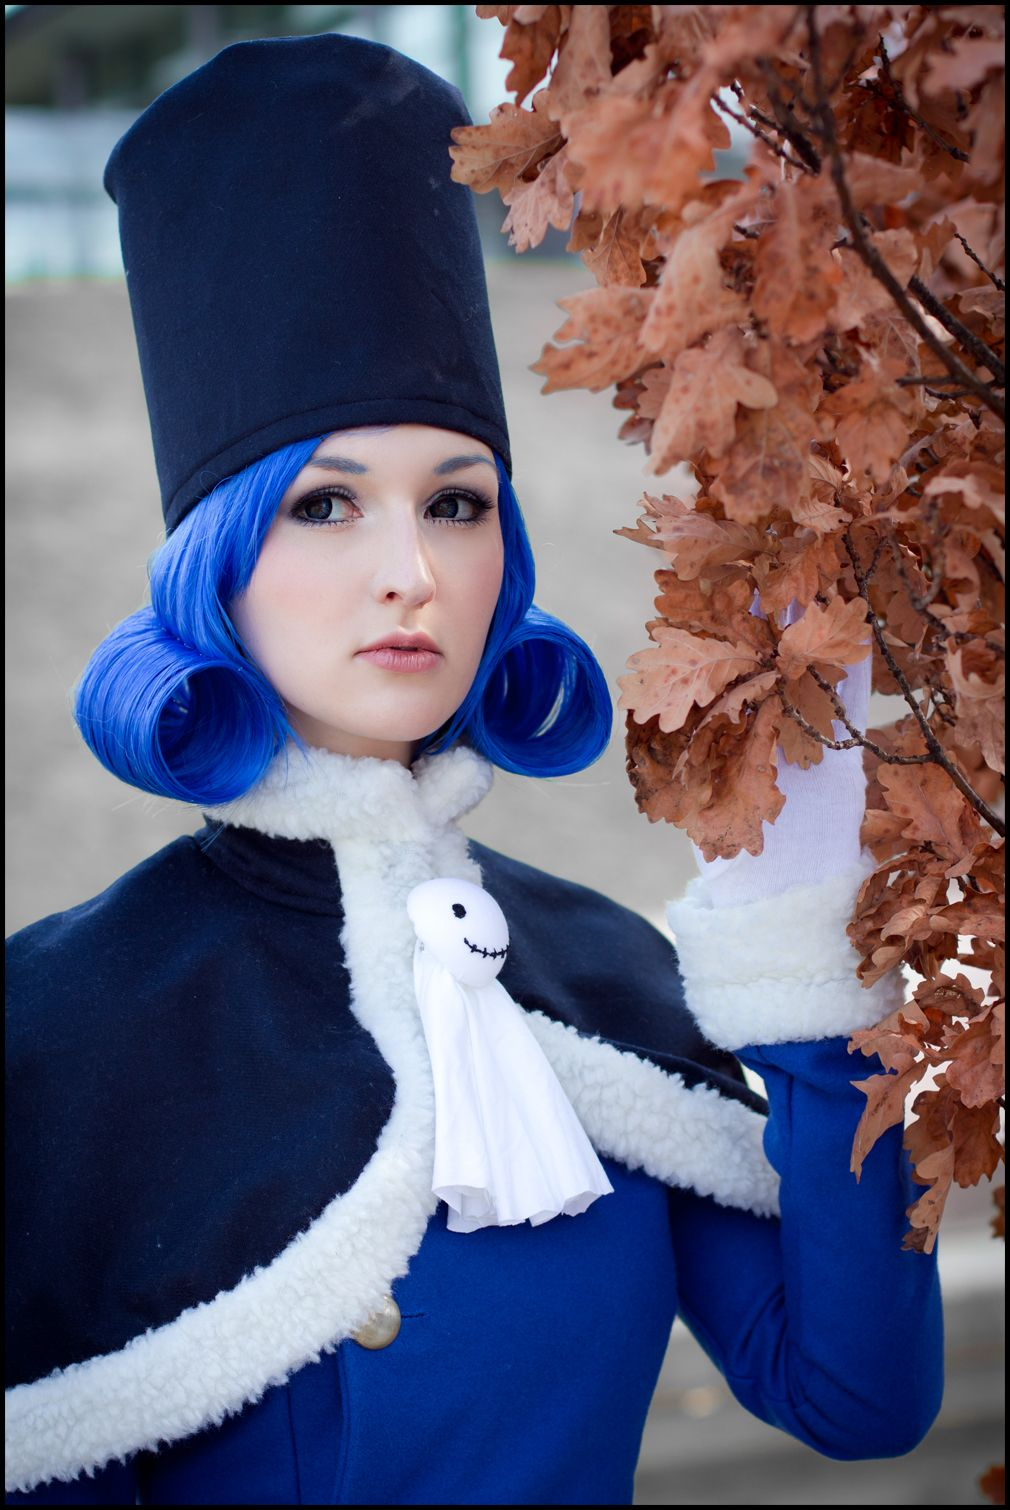 Juvia (Fairy Tail) | Juvia | Fairy tail, Fairy tail juvia ... Fairy Tail Cosplay